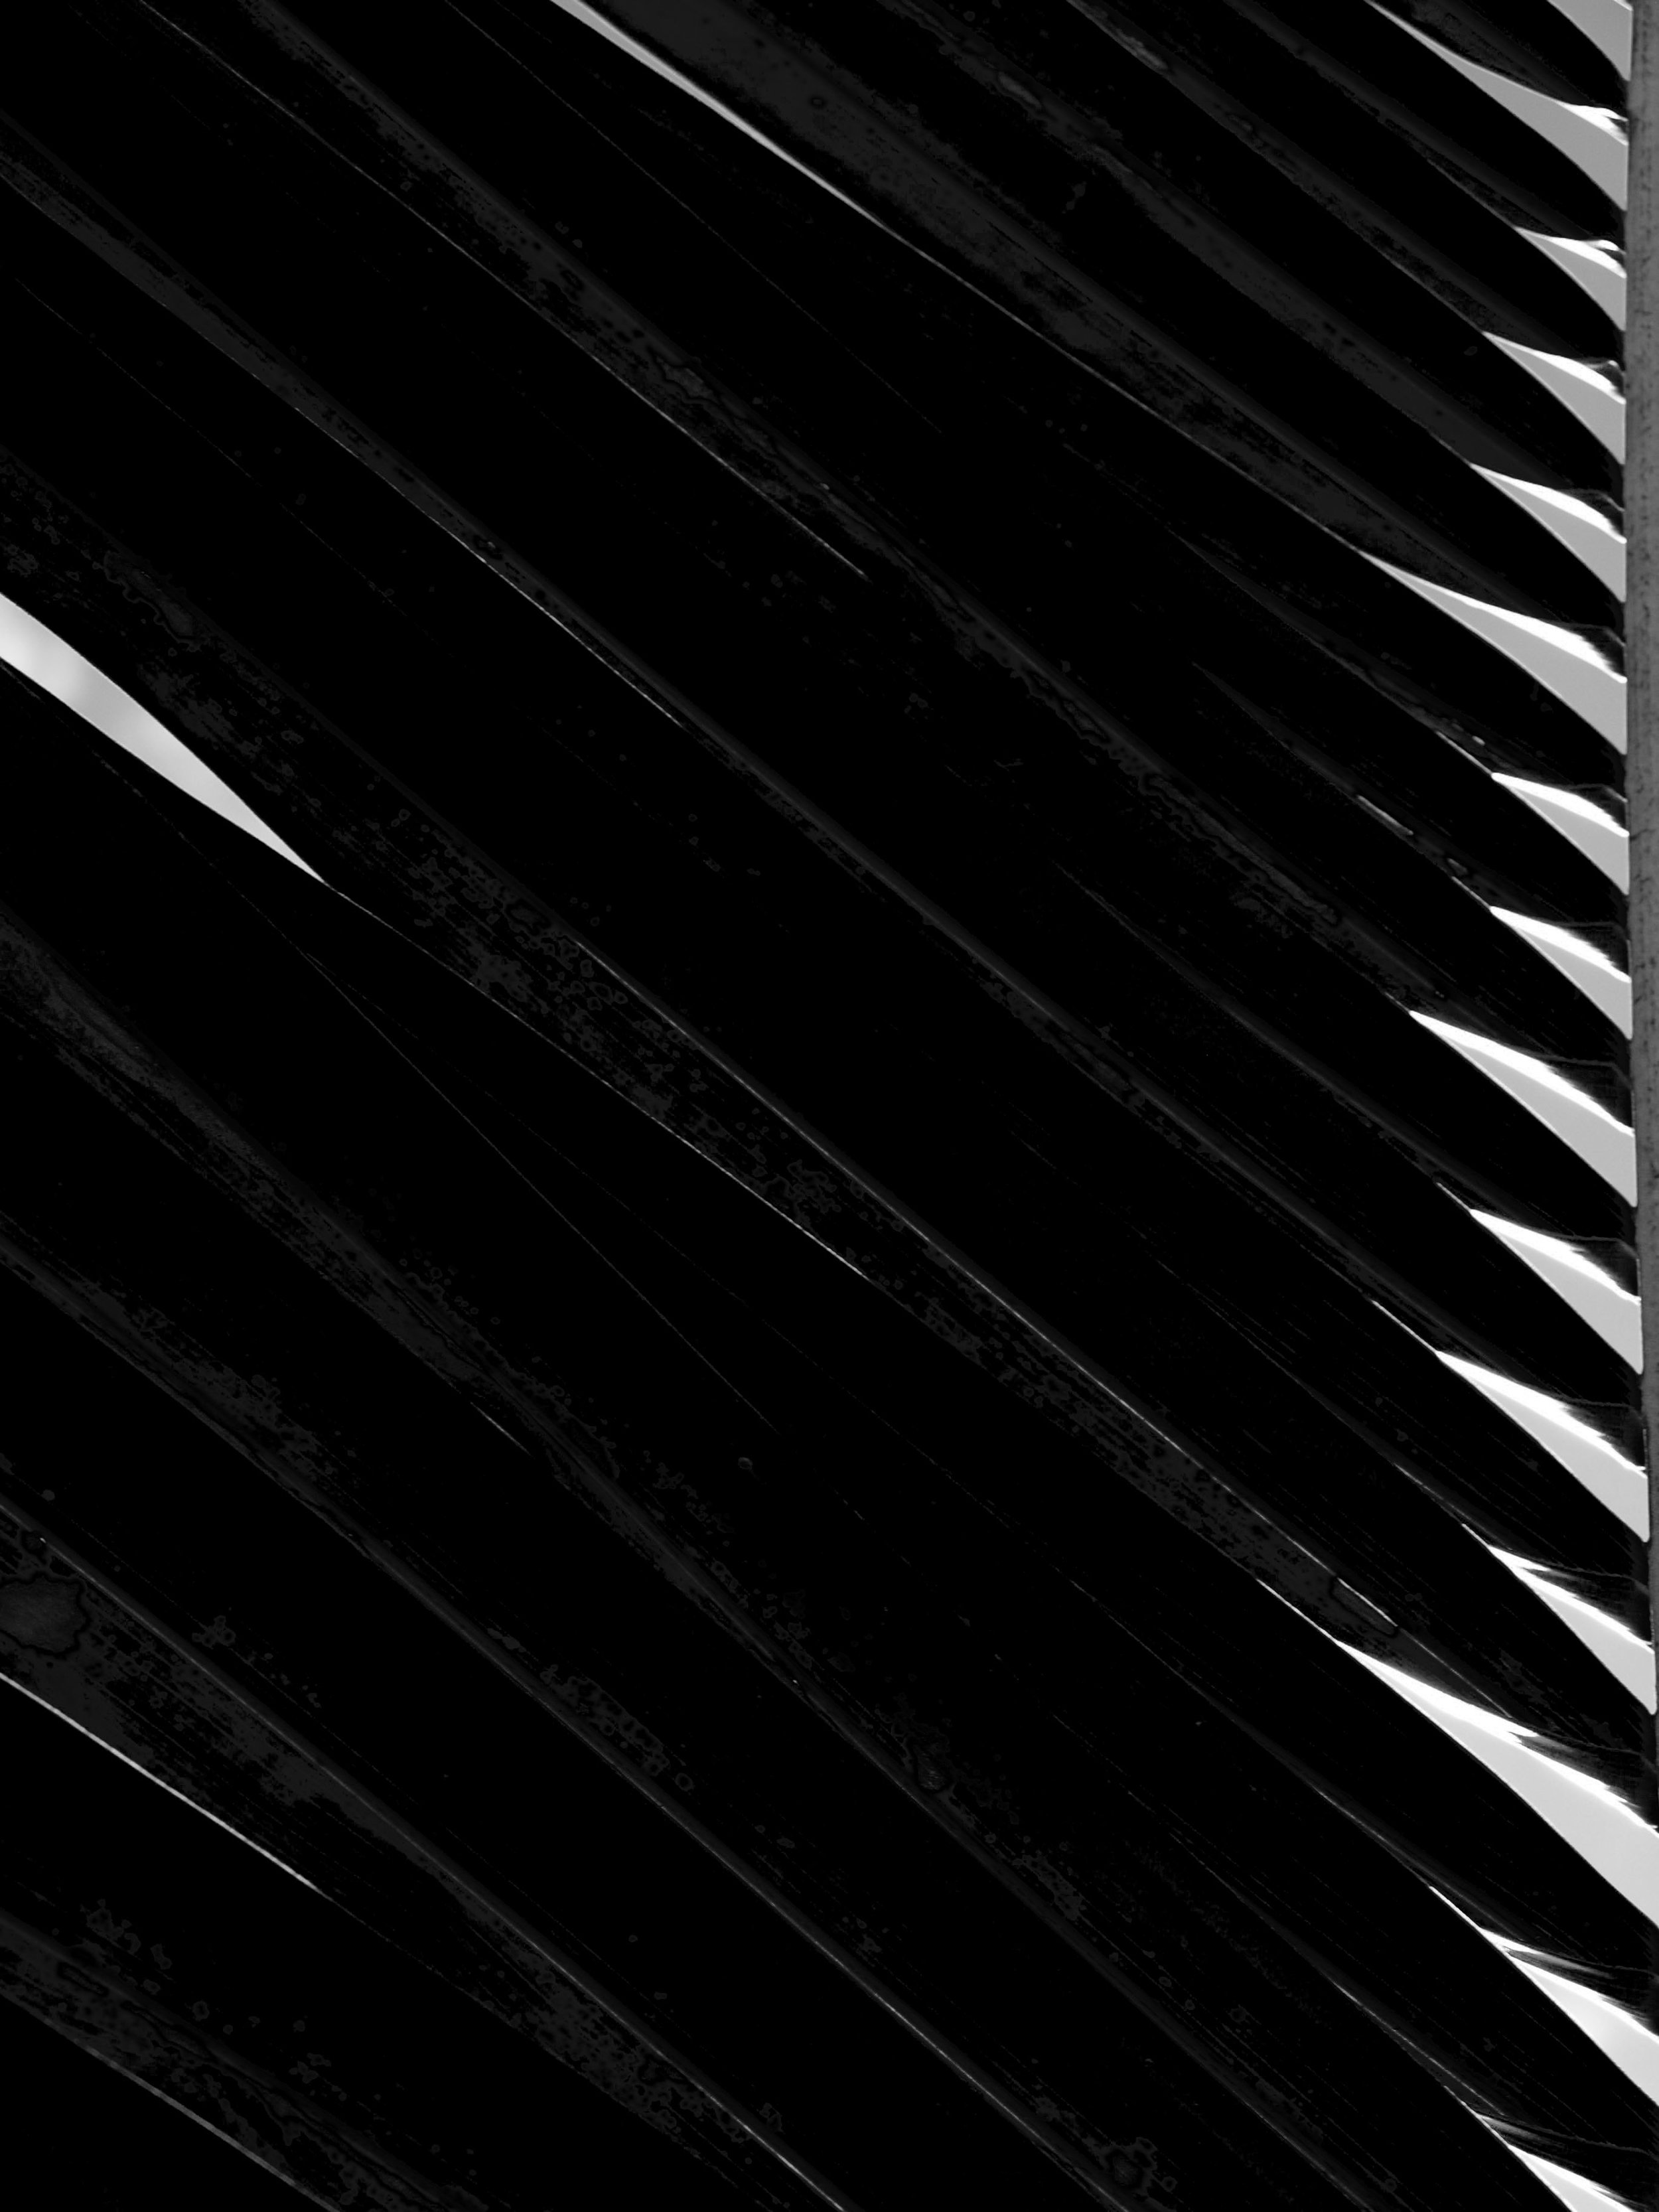 abstract_black_and_white_photography.jpg